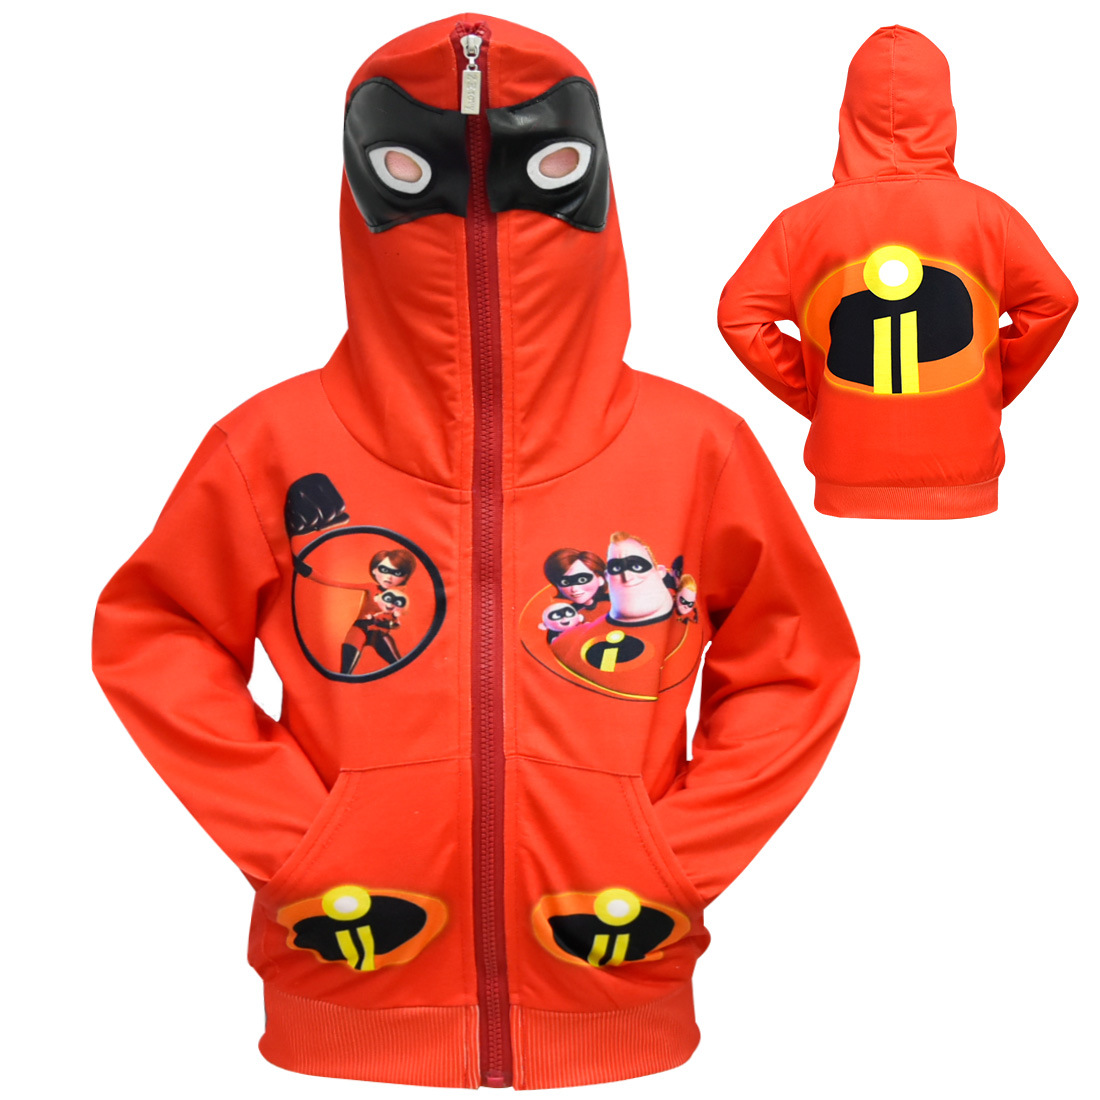 2018 Hot The Incredibles 2 Cartoon Hoodies For Kids Boy's Girl's Spring Autumn Sweatshirt Top Coat Sportswear Cosplay Costume